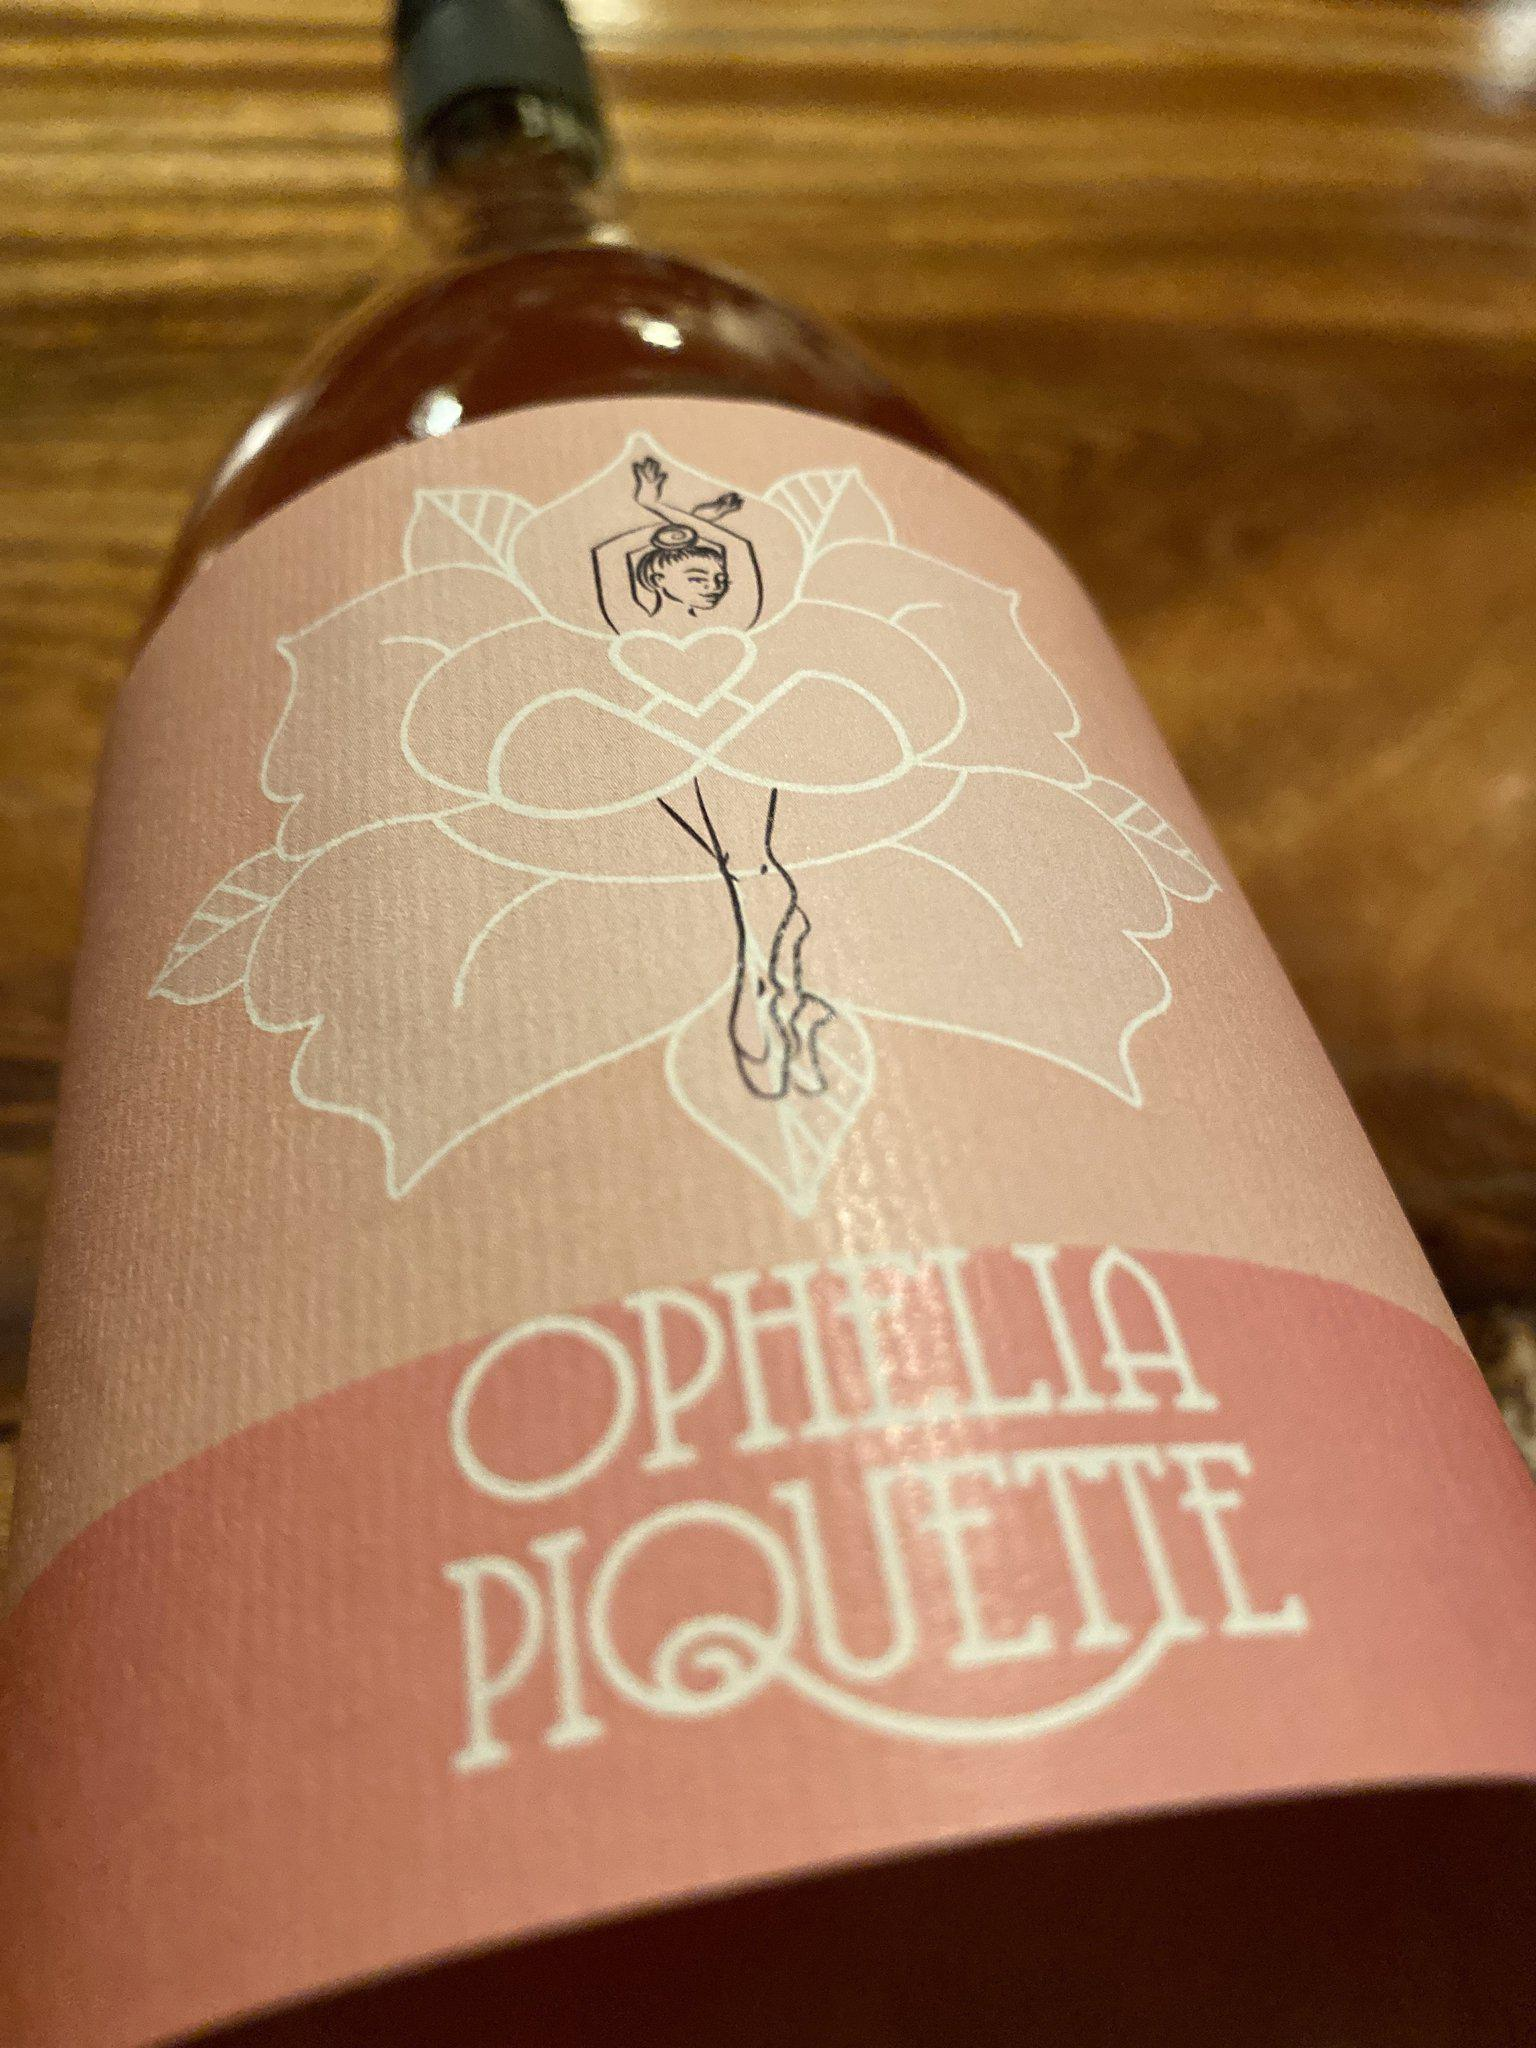 Ophelia Piquette, Natural Wine